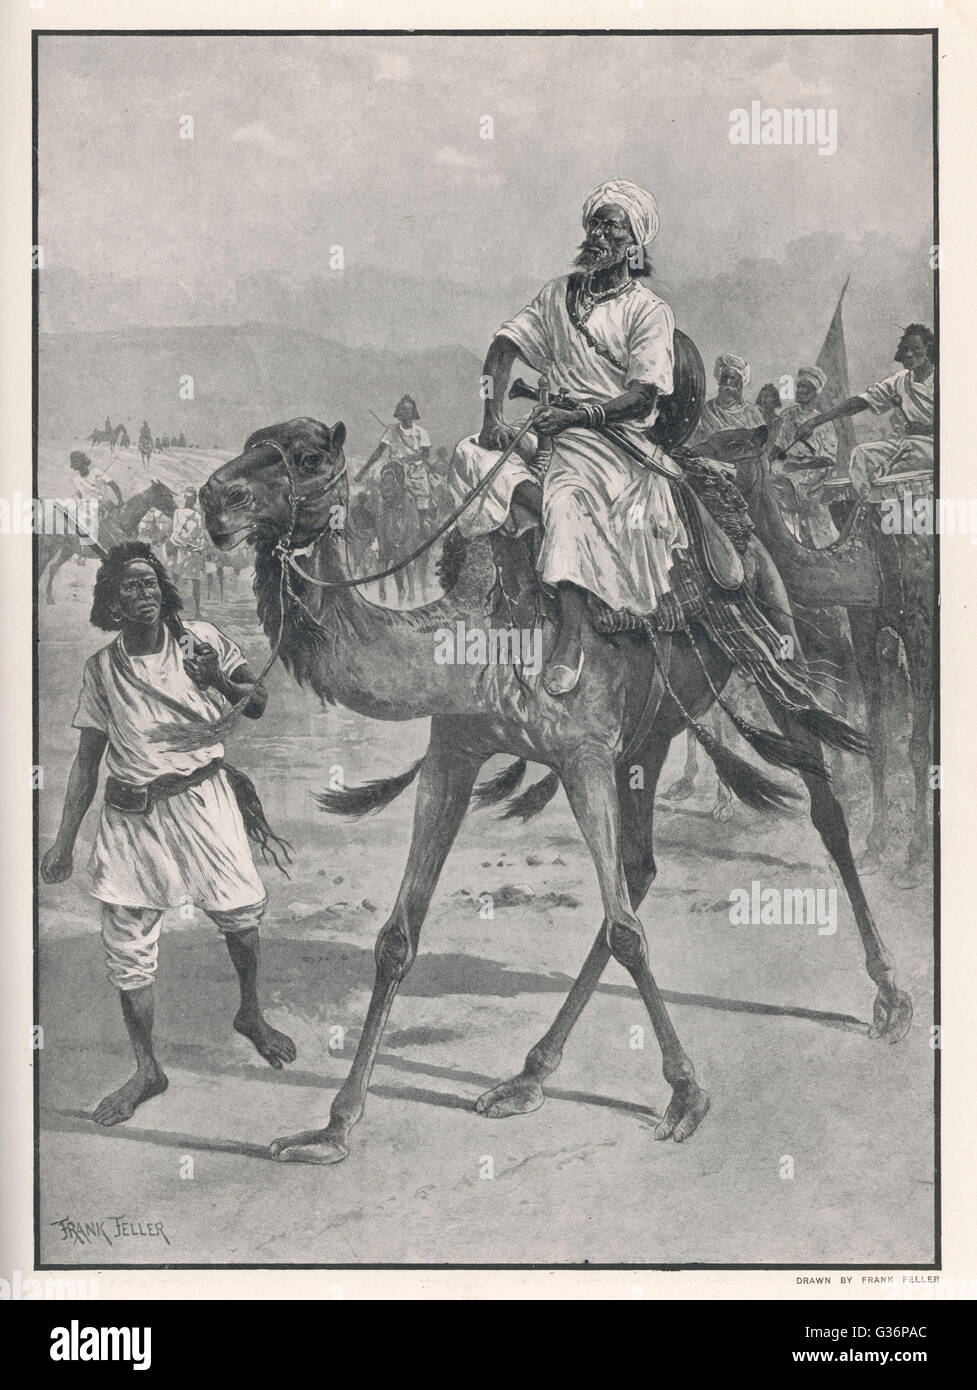 Mohammed Abdullah Hassan, Somali religious and nationalist leader, nicknamed The Mad Mullah by the British.  He - Stock Image